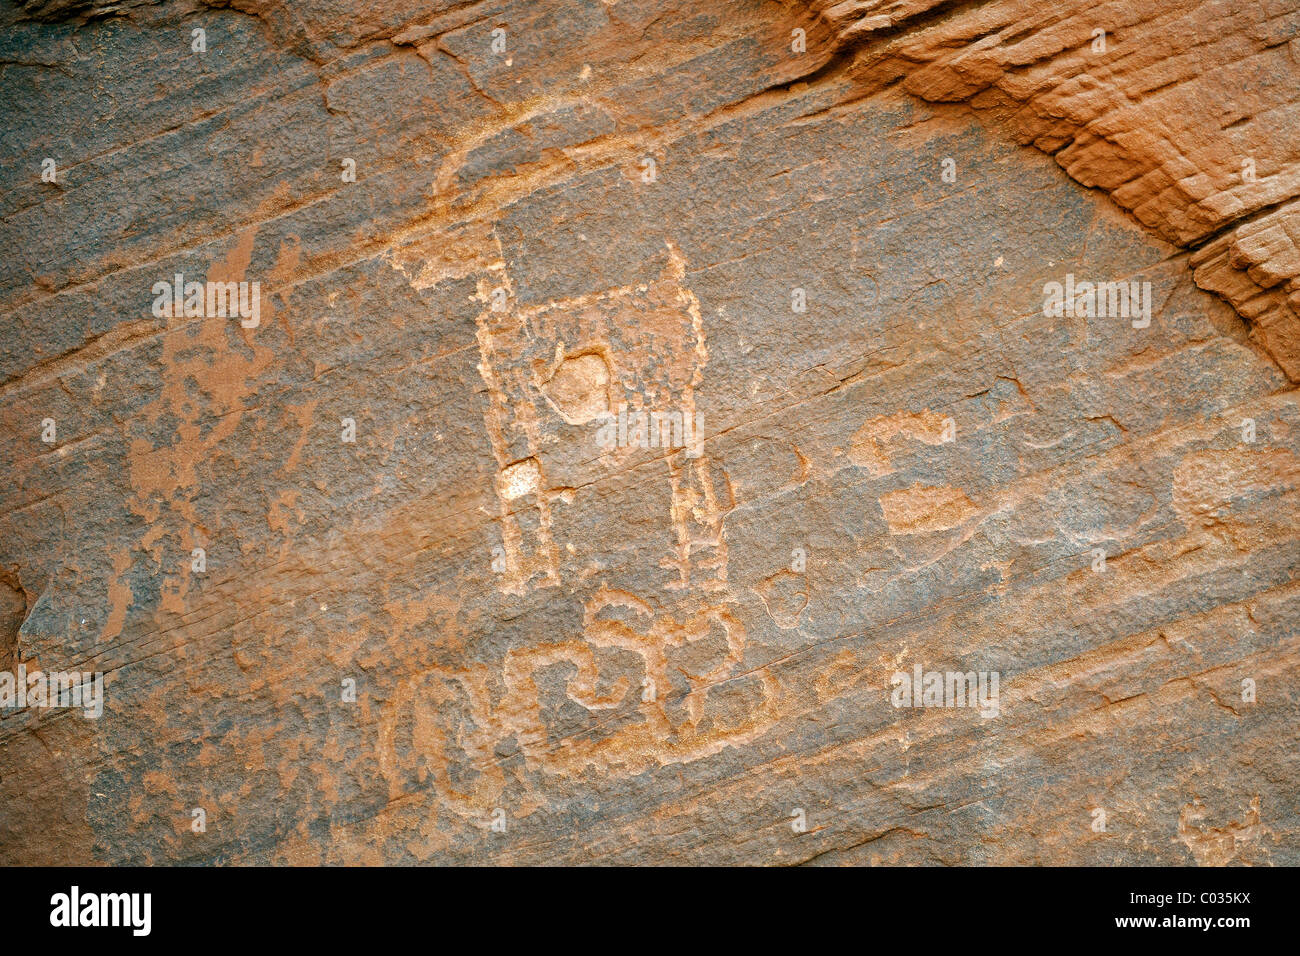 Ca. 1500 year old wall paintings by Native Americans, Monument Valley, Arizona, USA - Stock Image